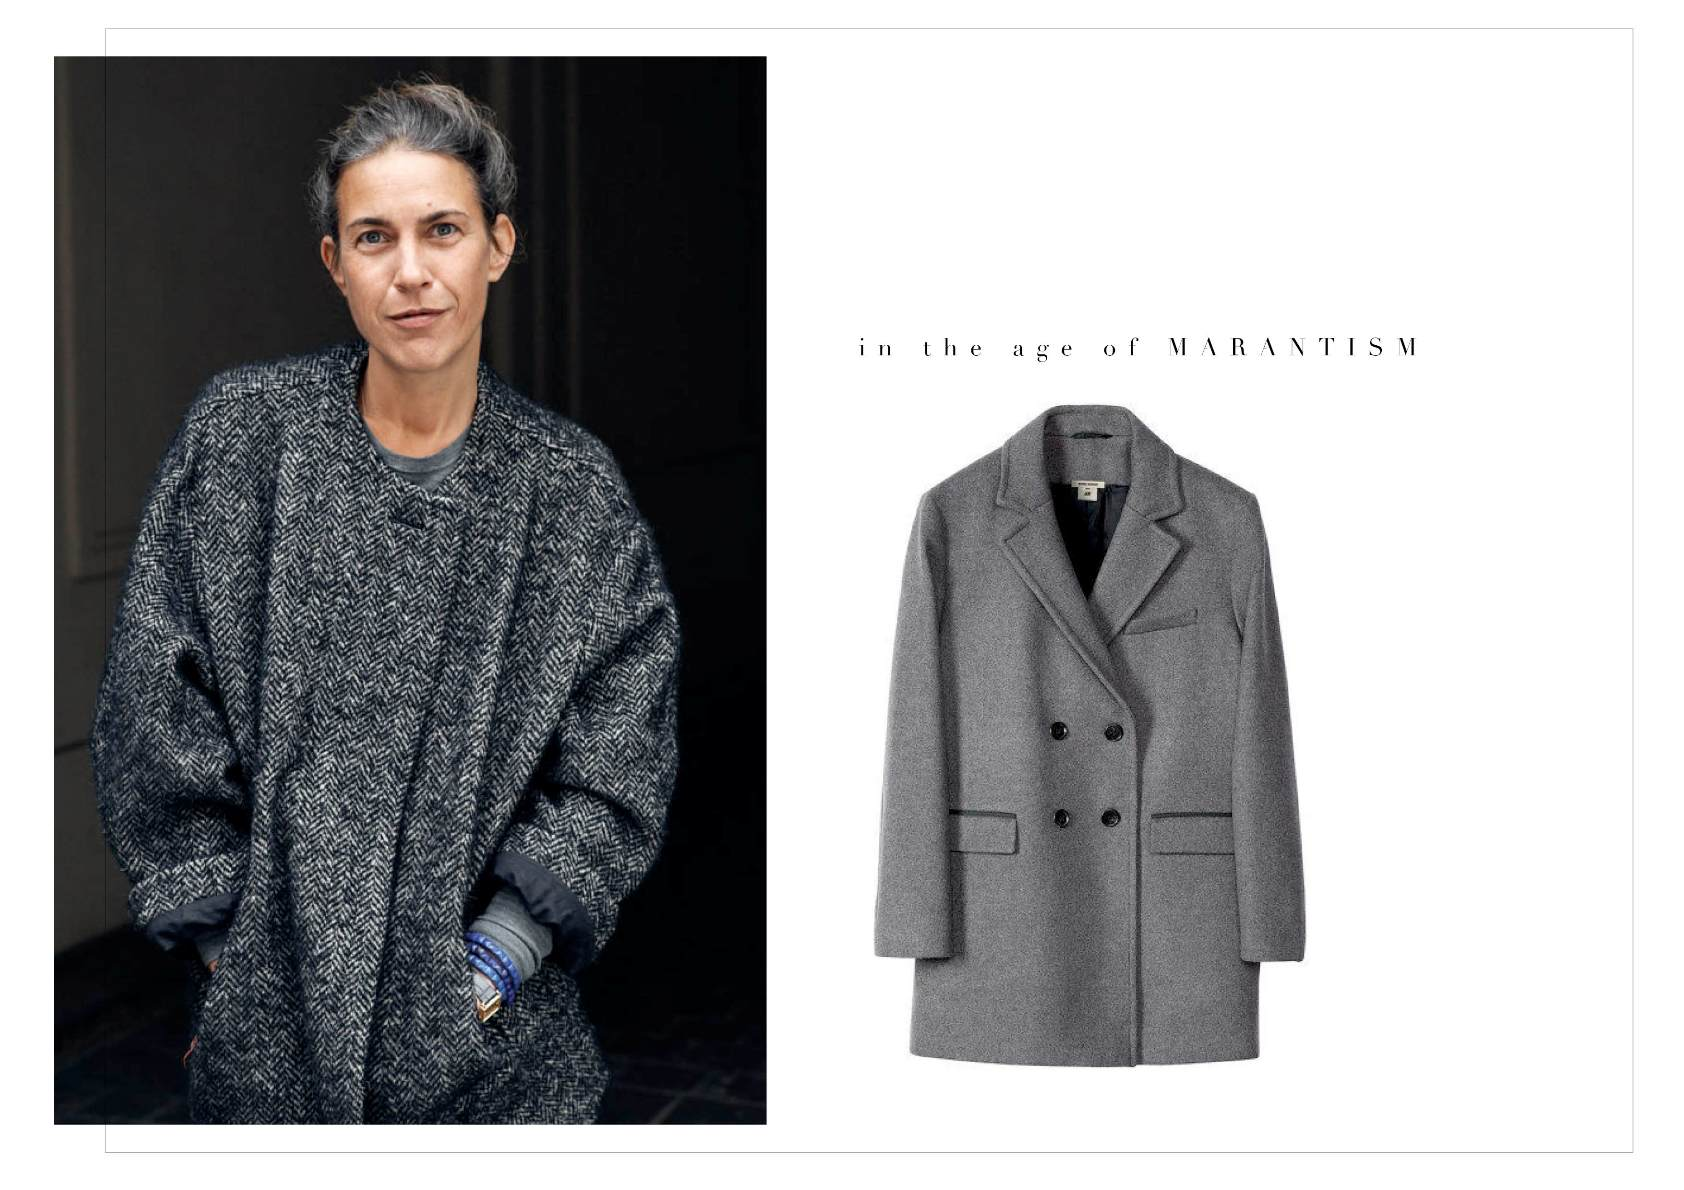 Isabel Marant for H&M | #fashion #collaboration #outfit #collection #hm #marant #industryfiles